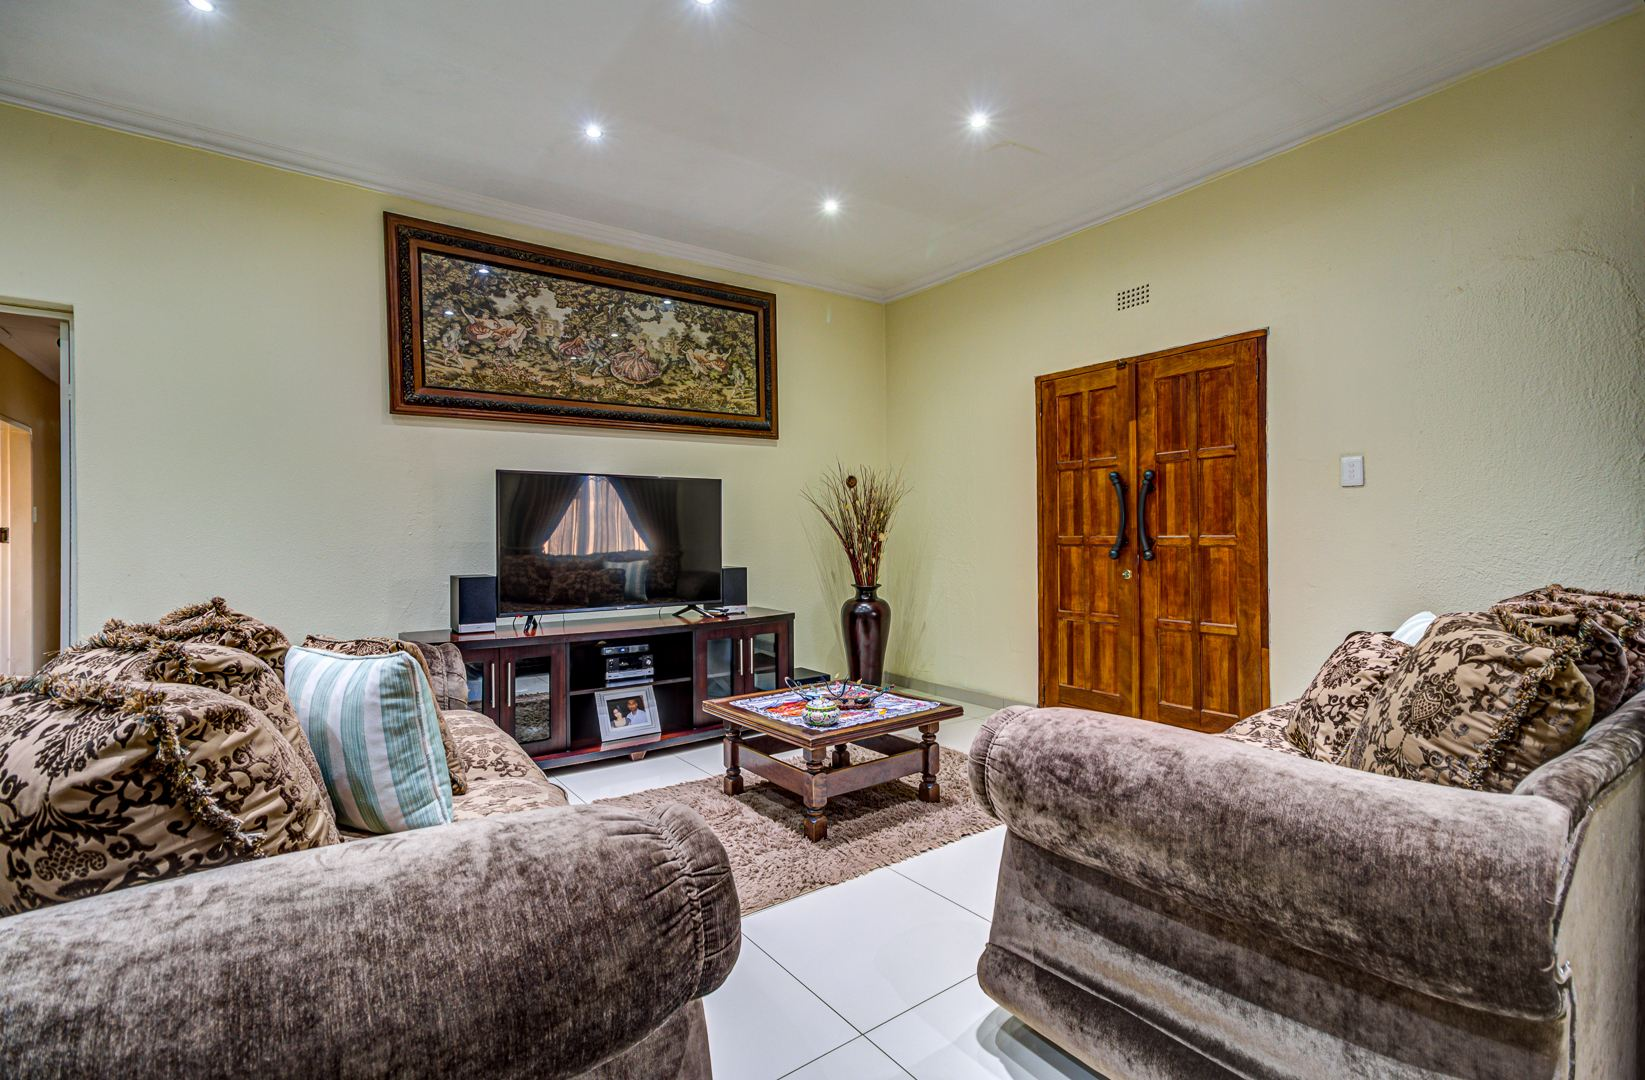 5 Bedroom House For Sale in Rynfield